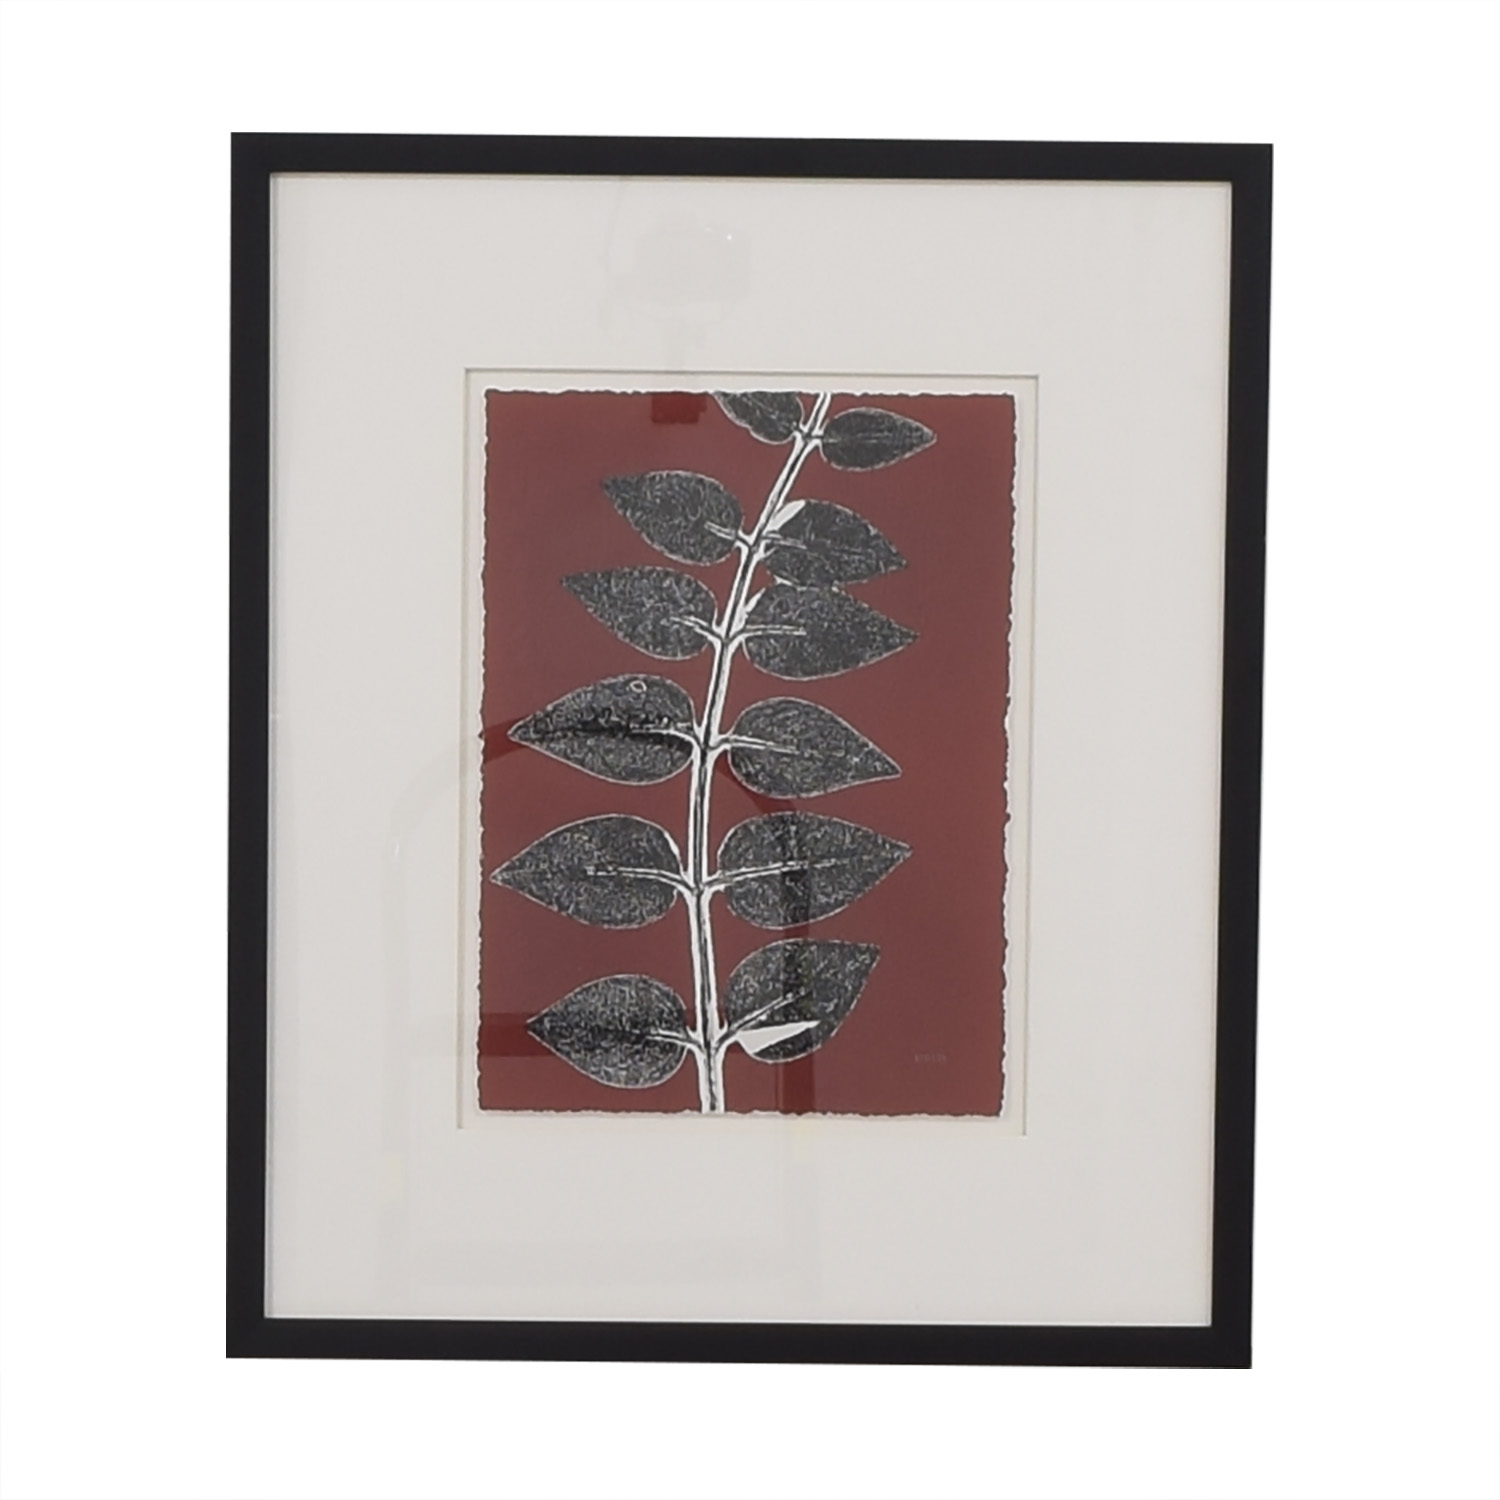 Ethan Allen Ethan Allen Botanical Artwork Print coupon